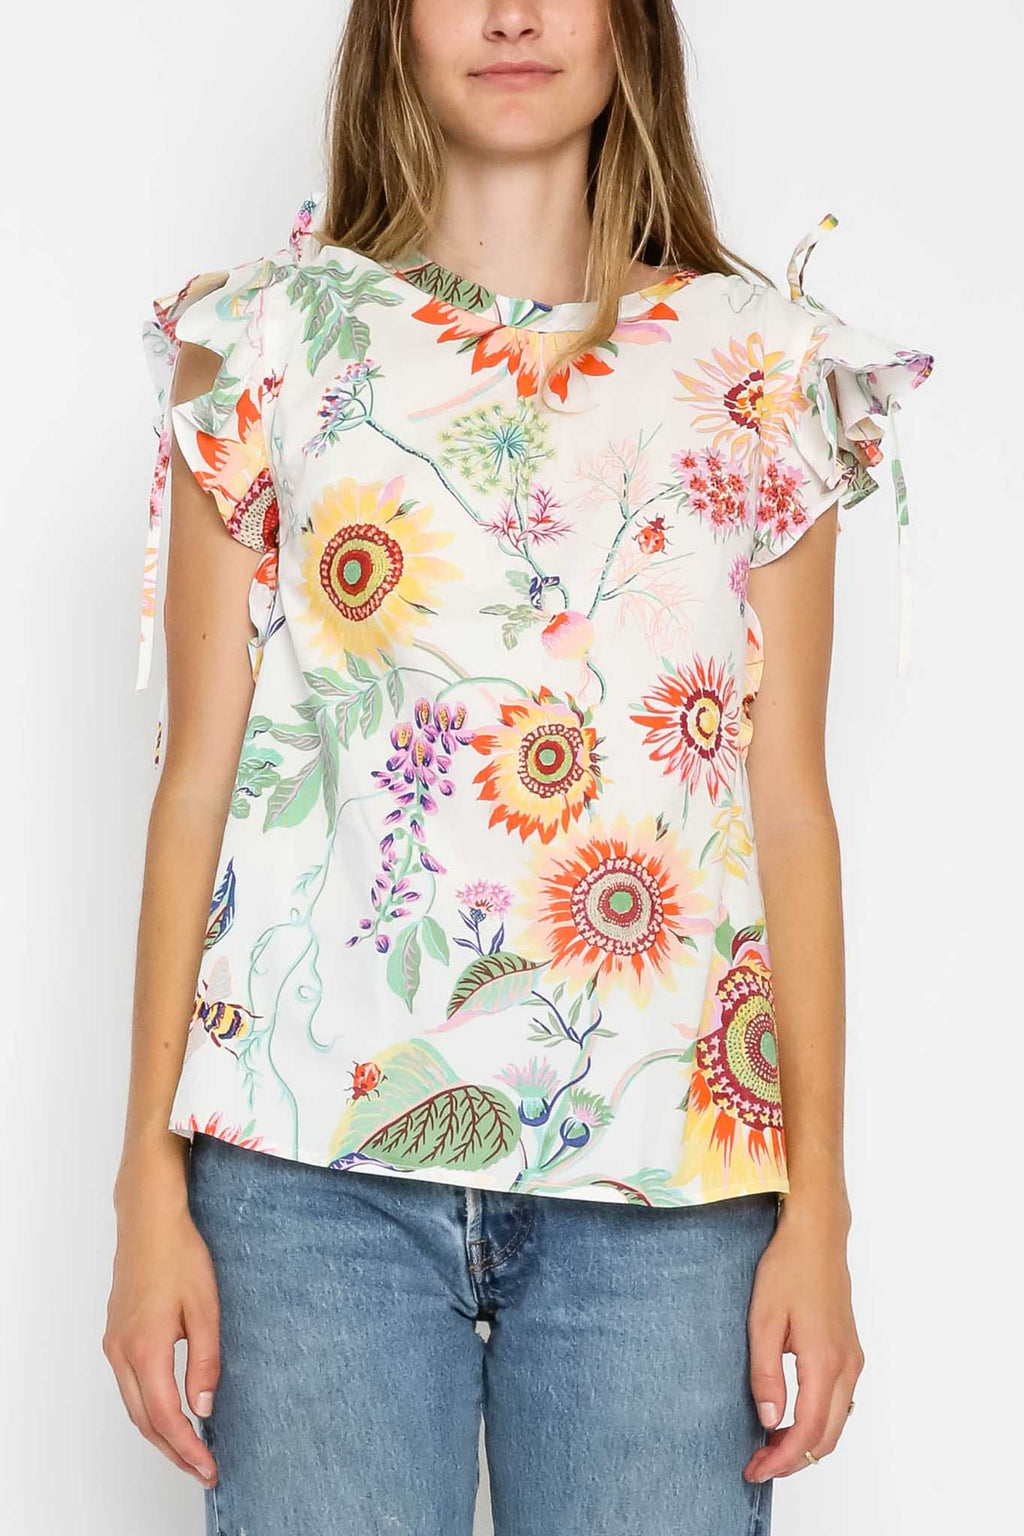 Olga Top Mid-Summer Bumble White